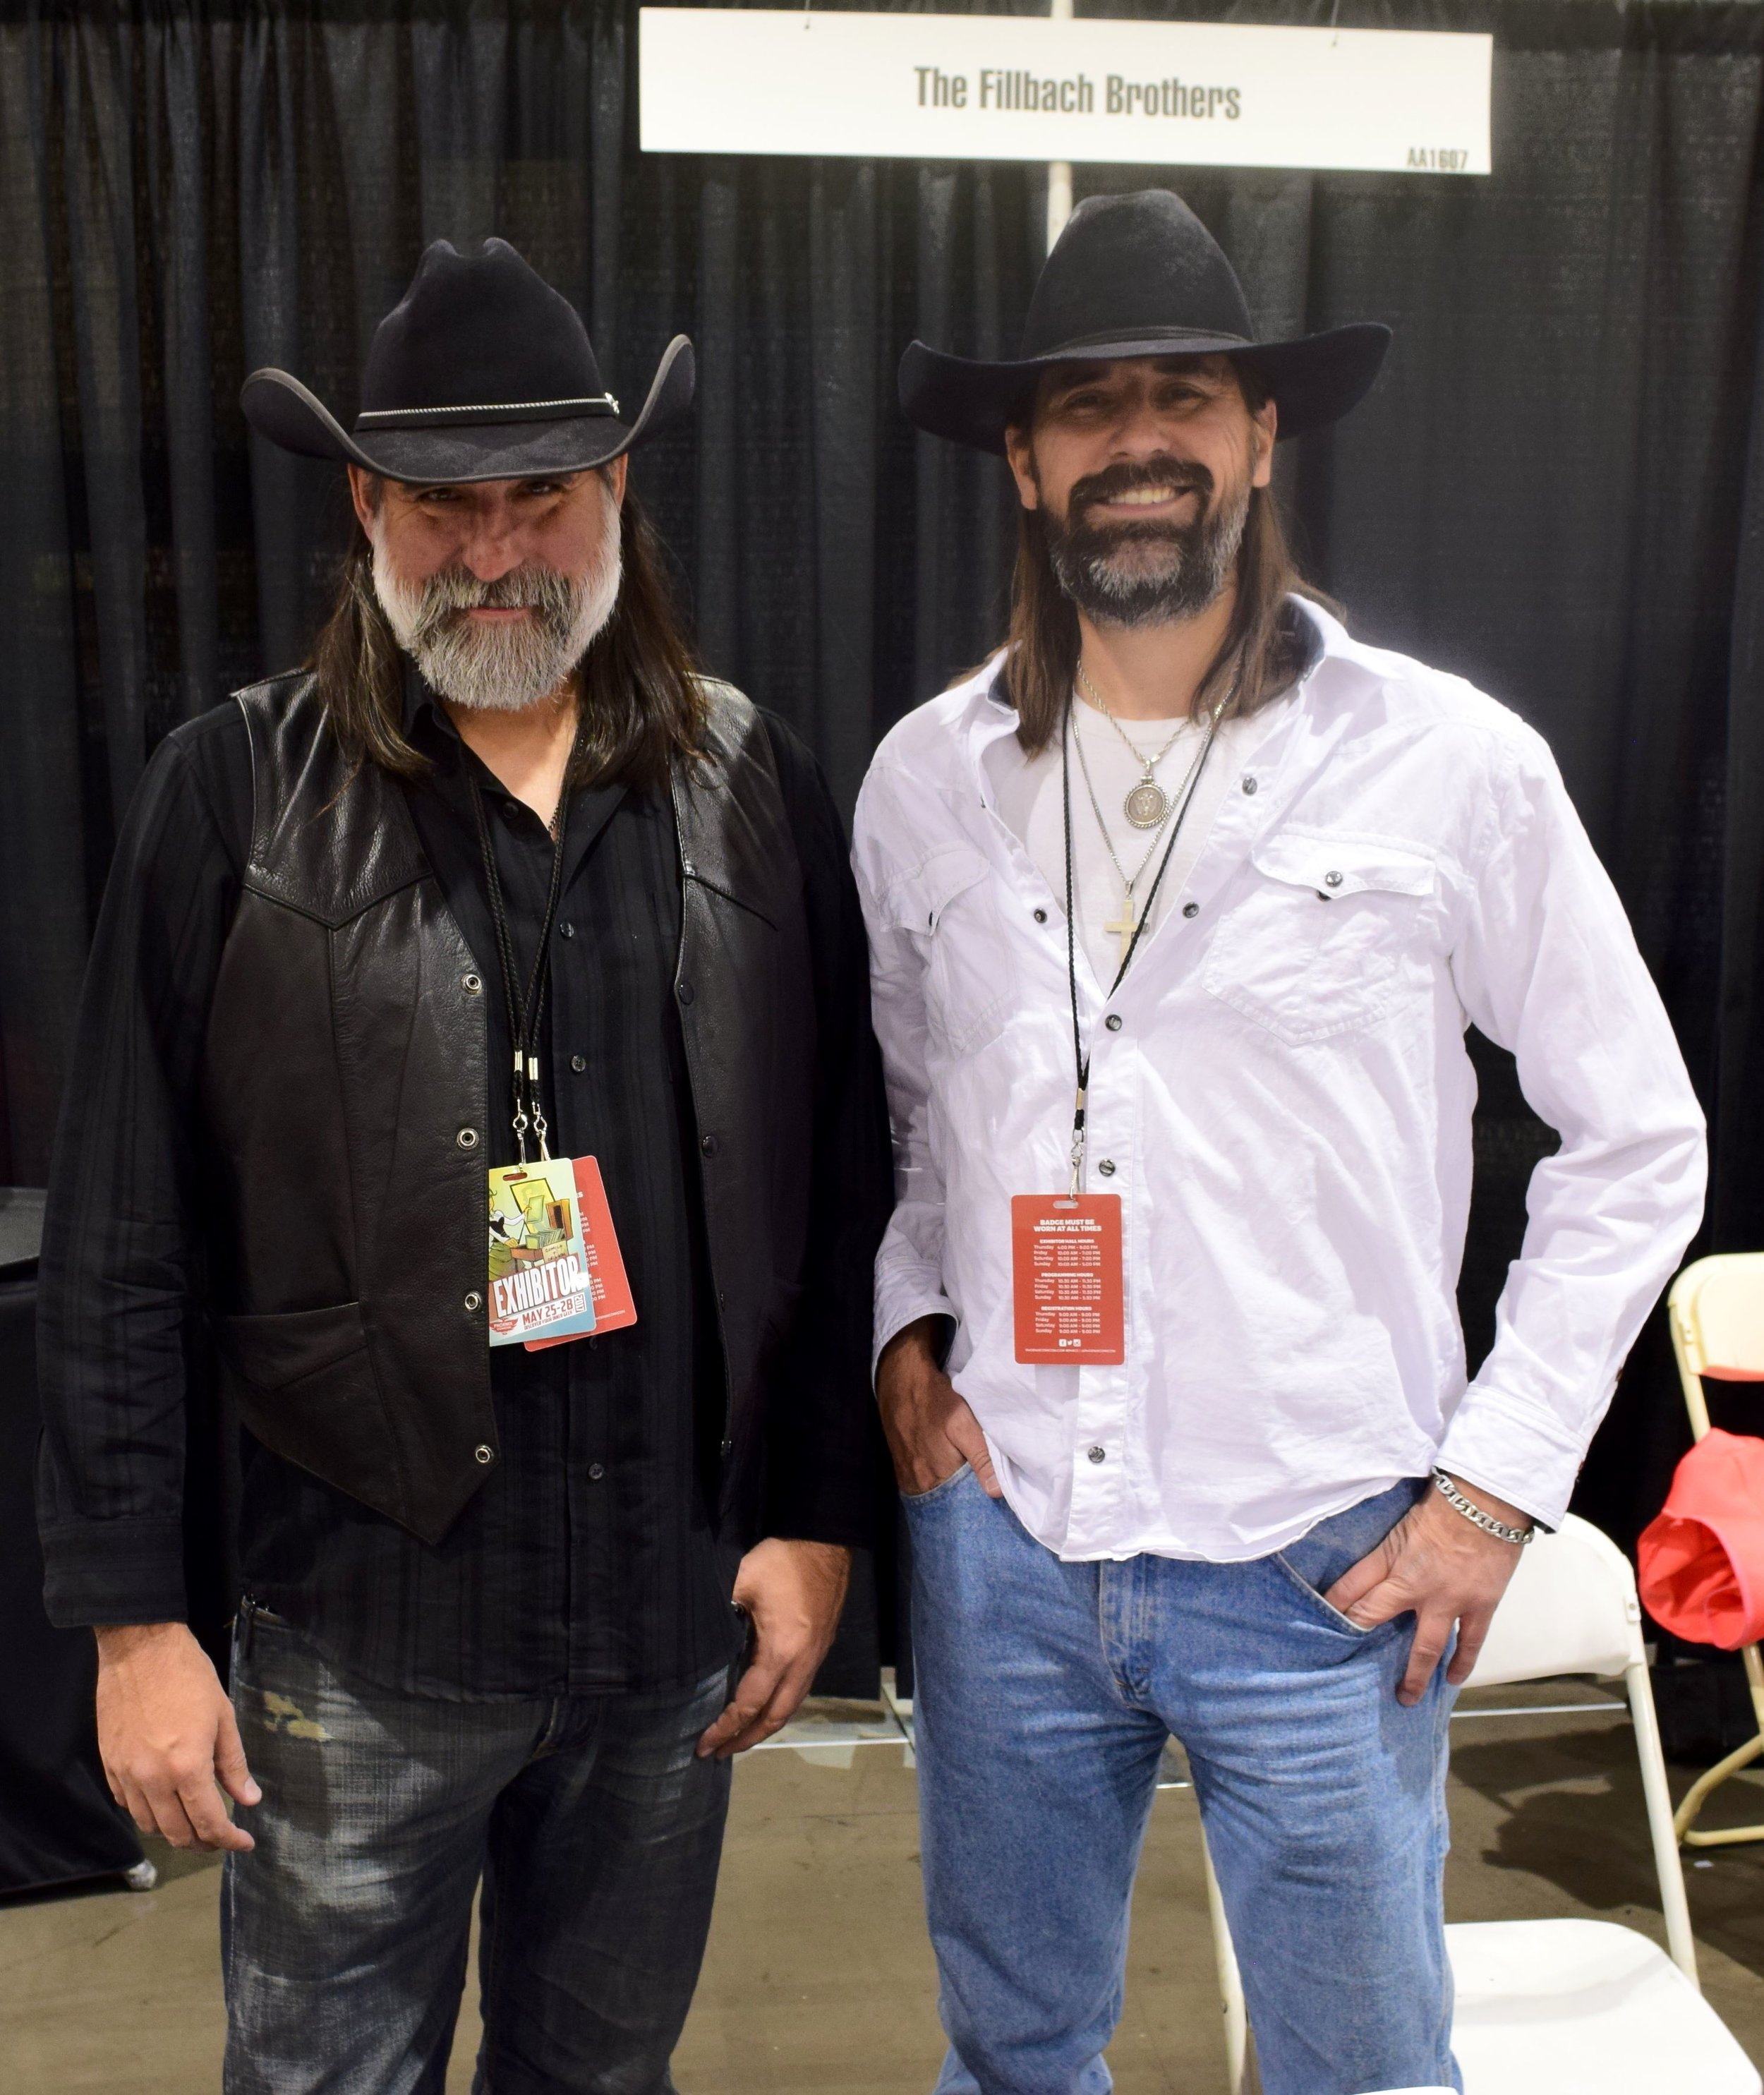 The Fillbach Brothers at Phoenix Comic Con 2017 (2)